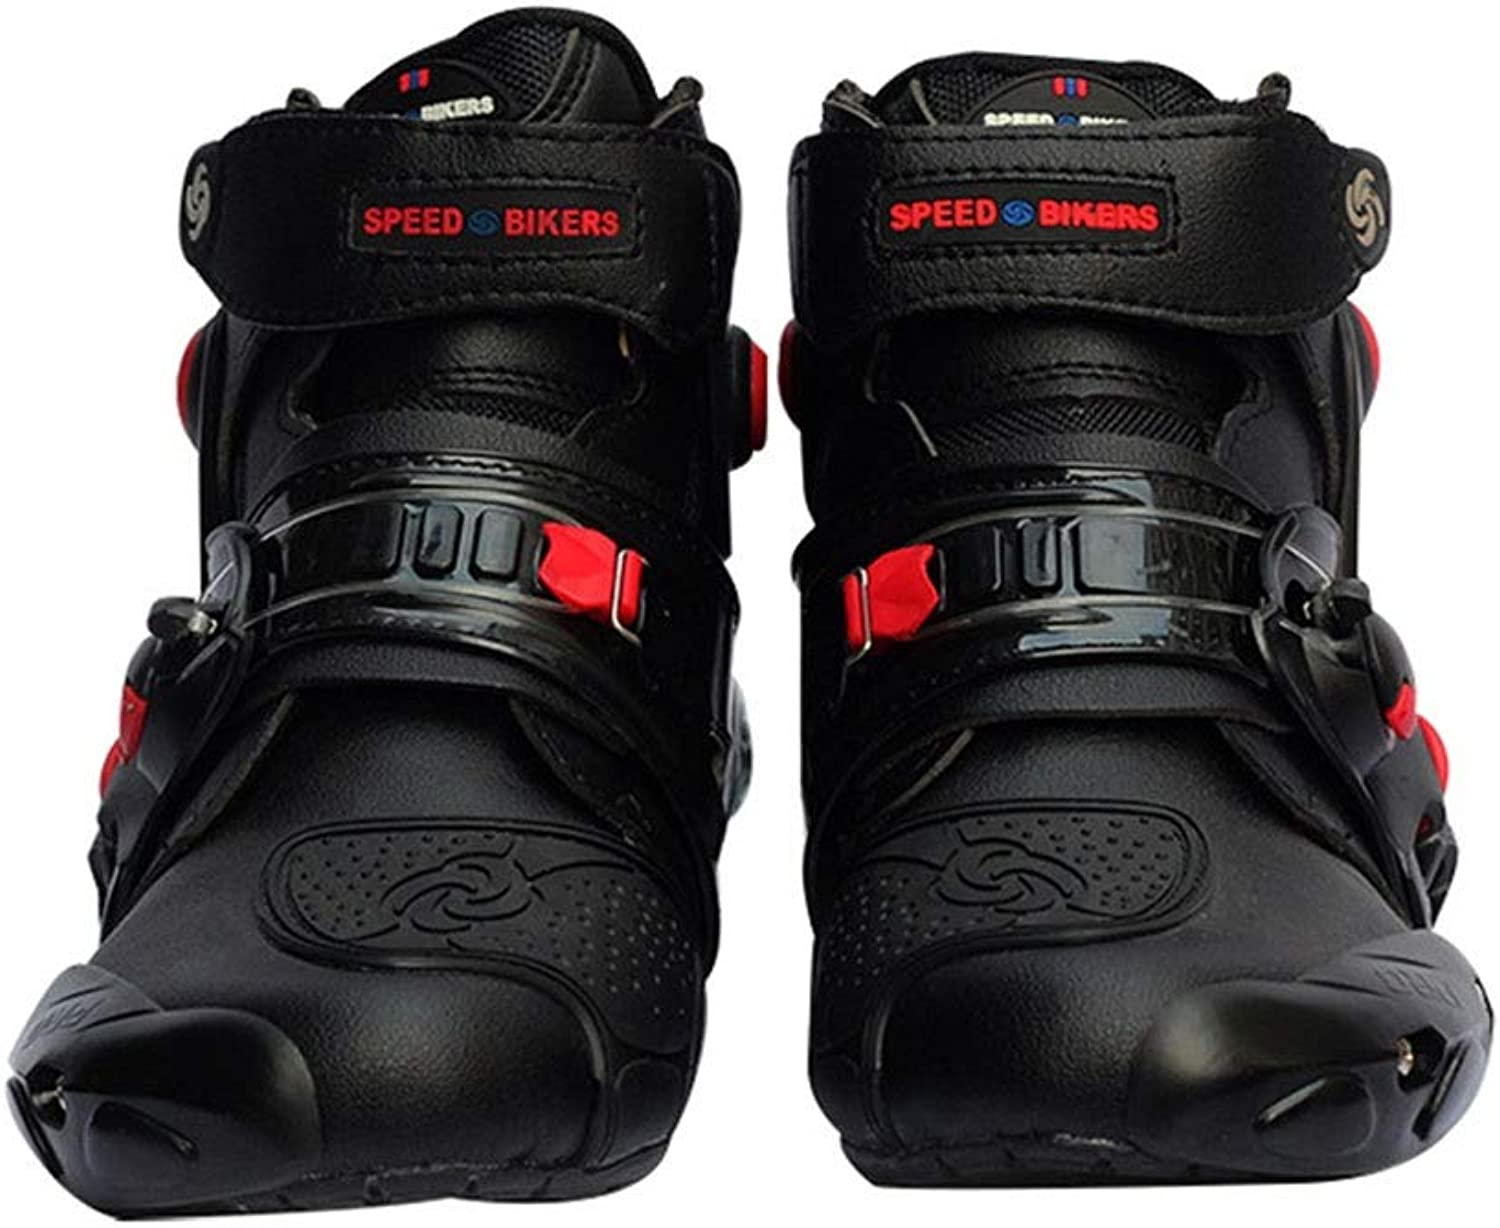 Motorcycle Riding shoes Locomotive Booties Light, Breathable, Anti-Drop, Comfort, Anti-Collision